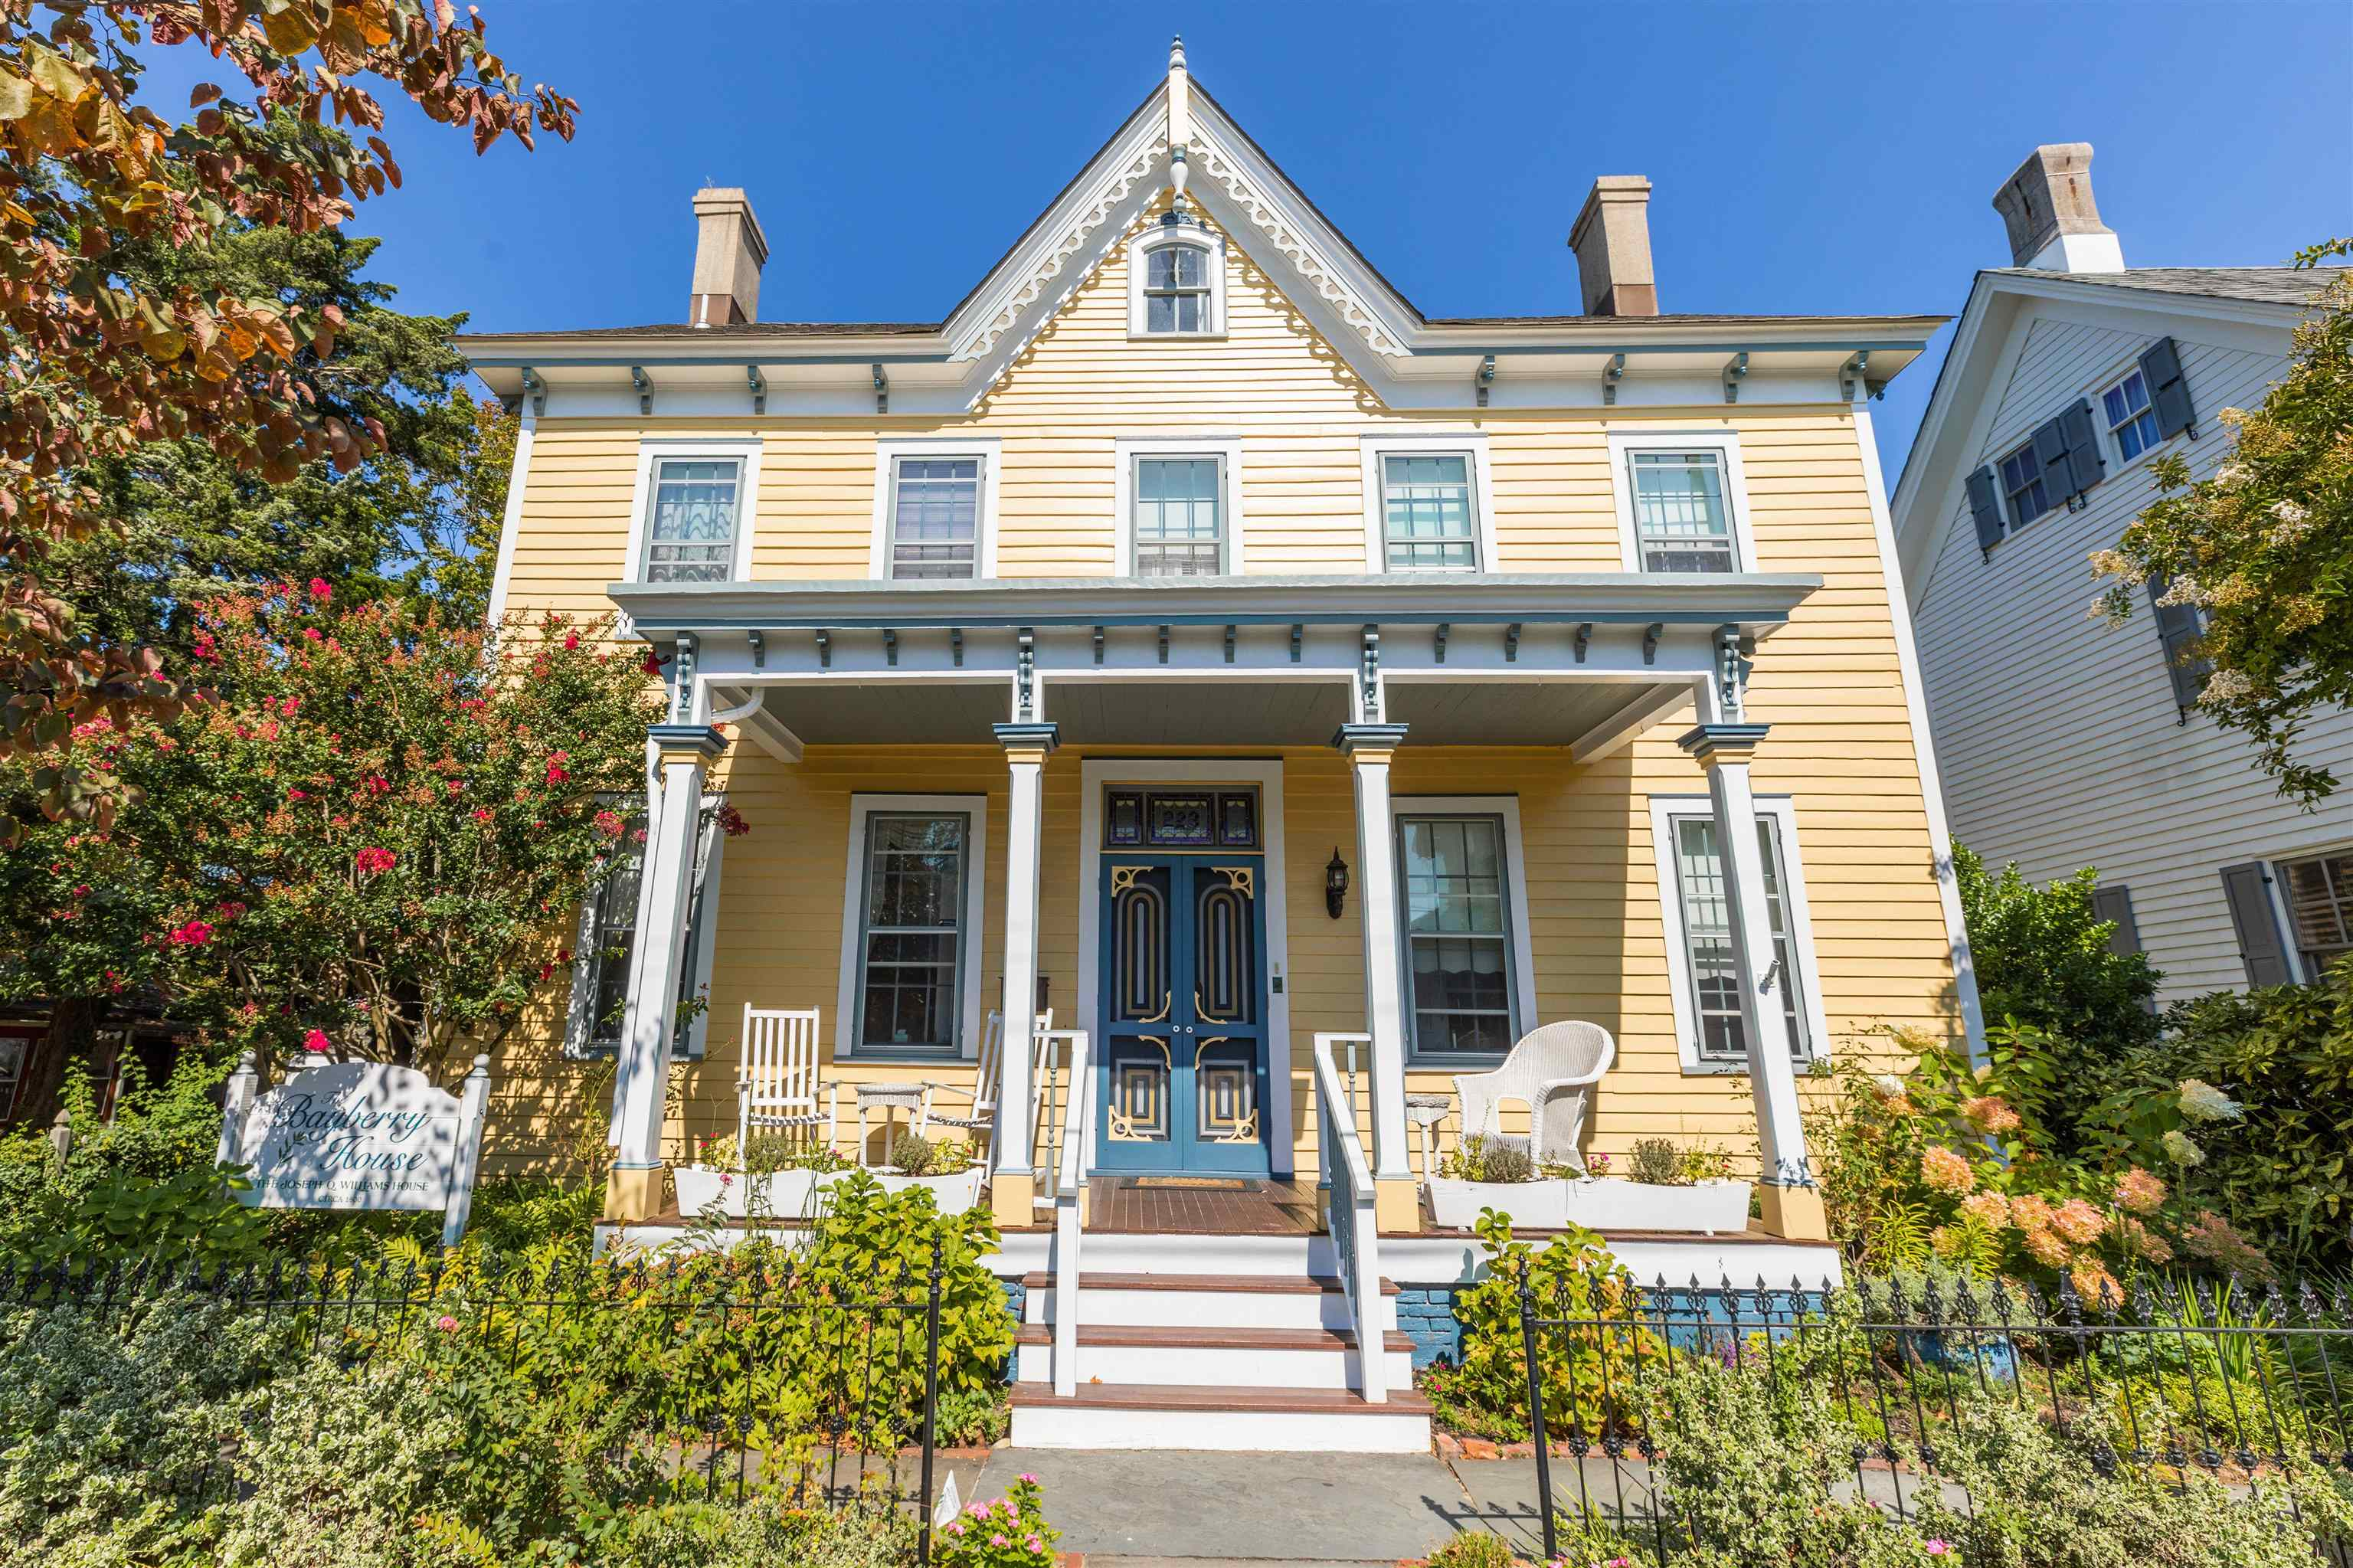 223 Perry Street - Cape May